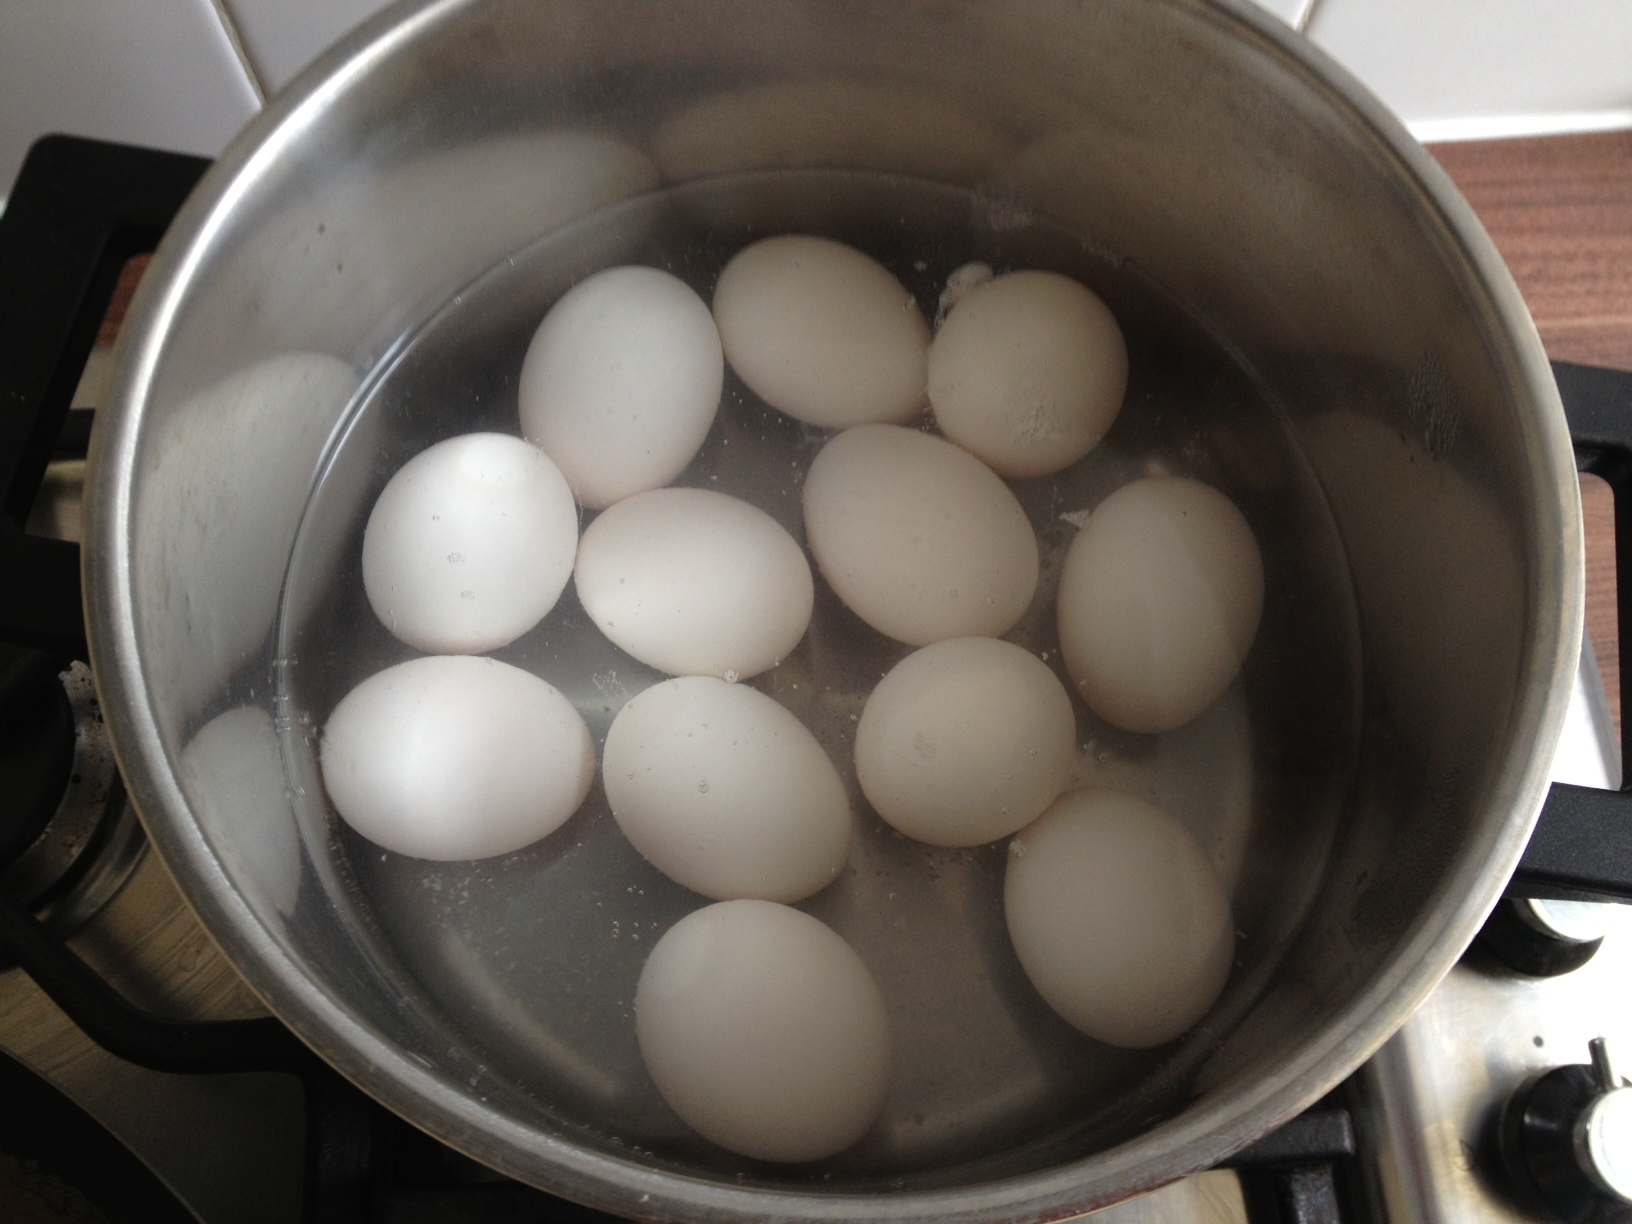 hard boil duck eggs for 12 minutes